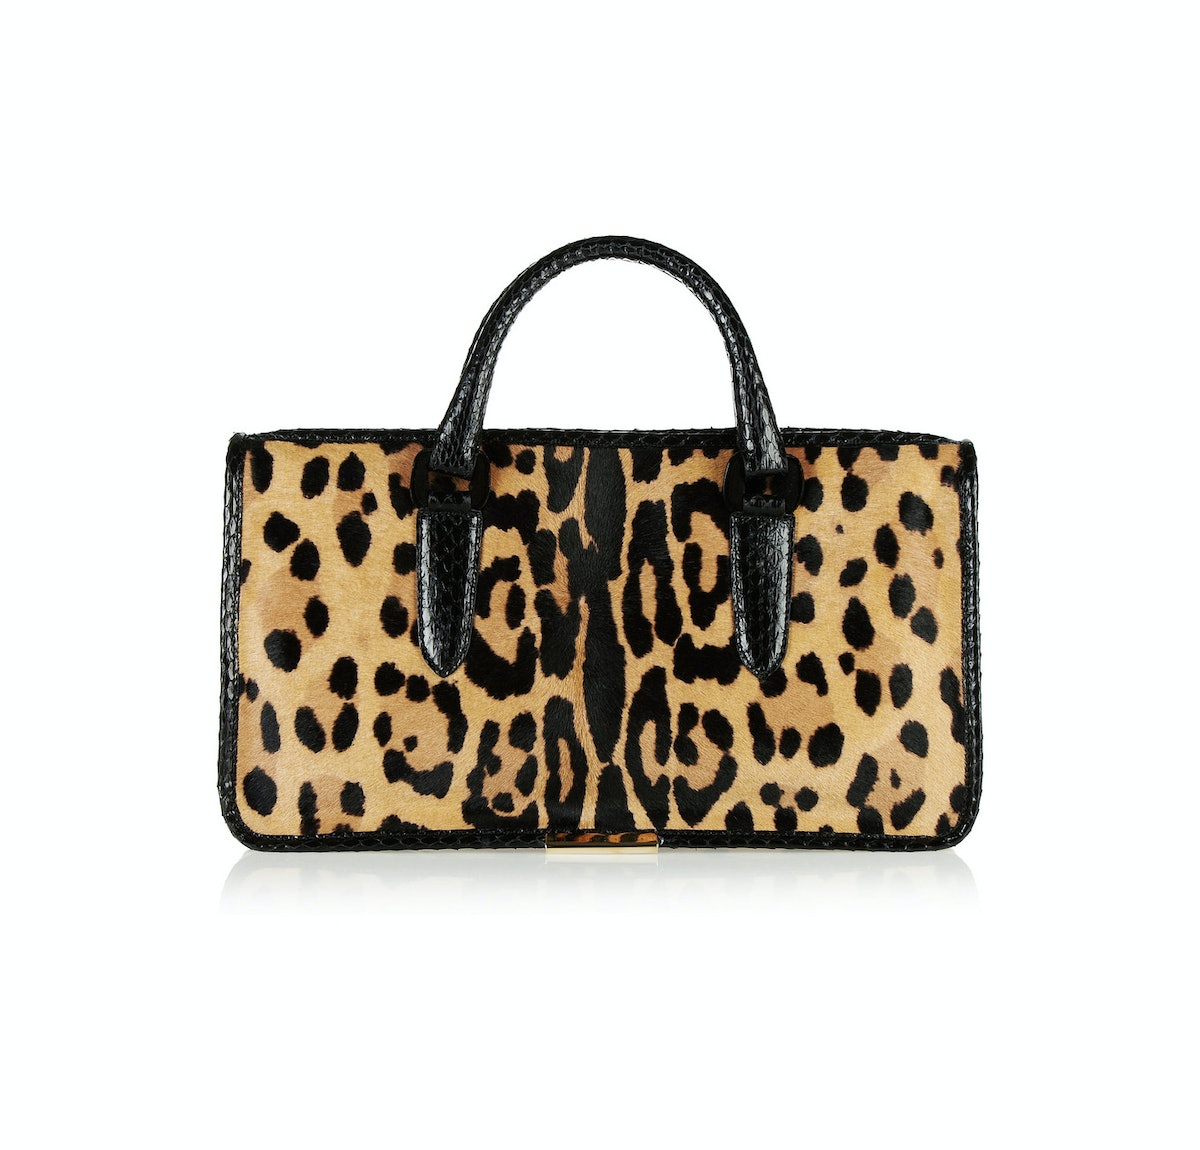 I think the new Tamara Mellon bags are great for spring—and they come at a great price. *Tamara Mellon Diglam elaphe-trimmed leopard-print calf hair tote, $1095,* [*netaporter.com*](http://www.net-a-porter.com/product/415790)